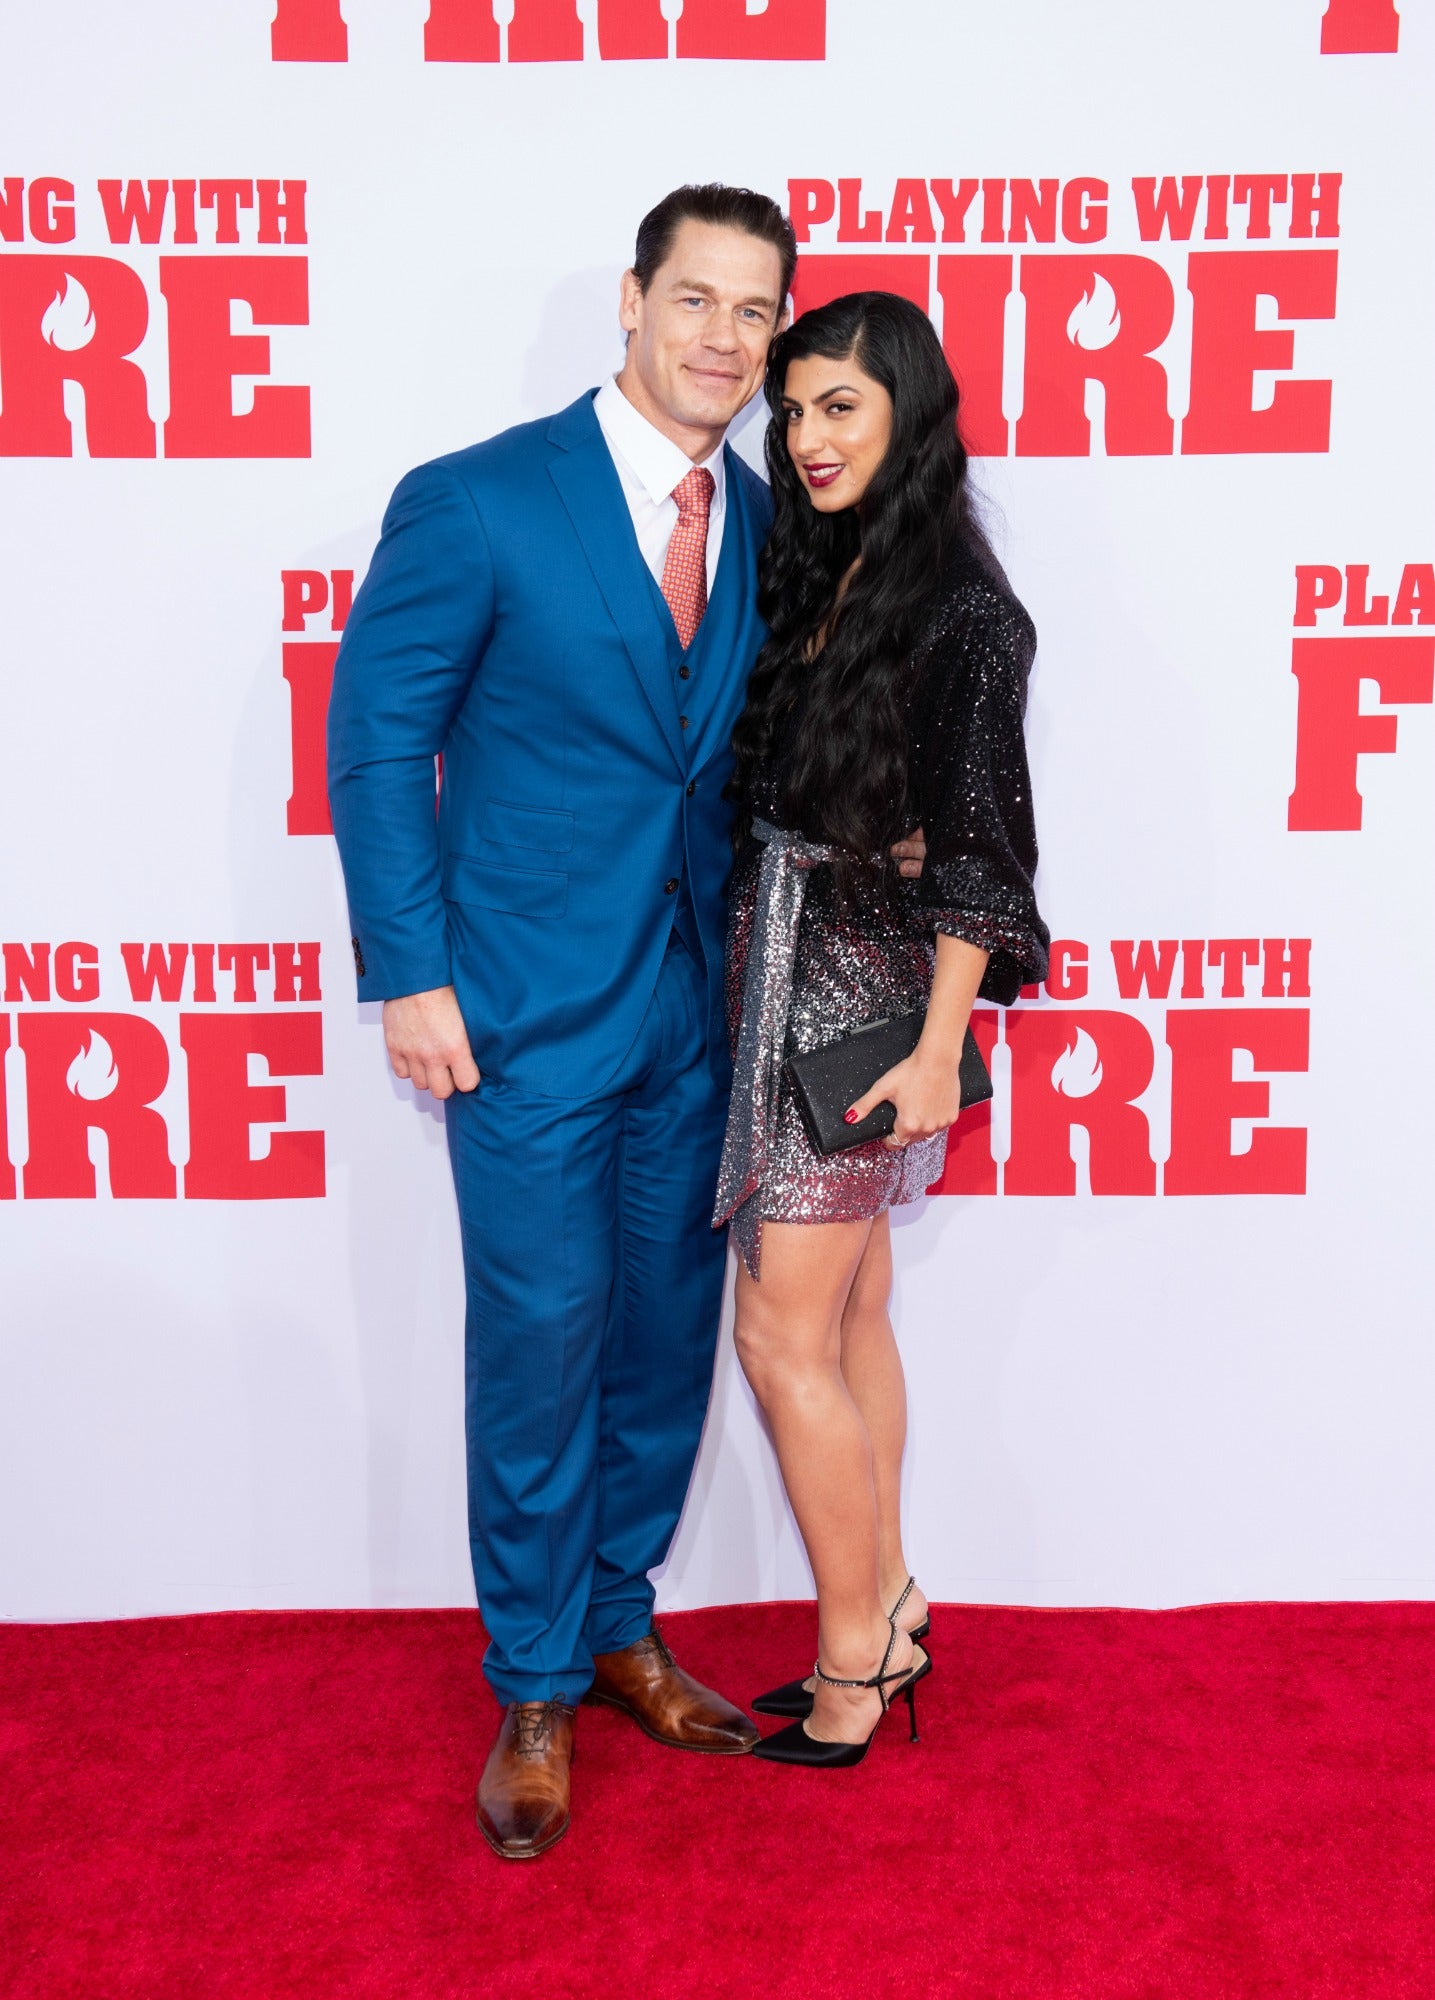 John Cena Calls Date Shay Shariatzadeh 'Beautiful' as They Make Red Carpet Debut as Couple (Exclusive)